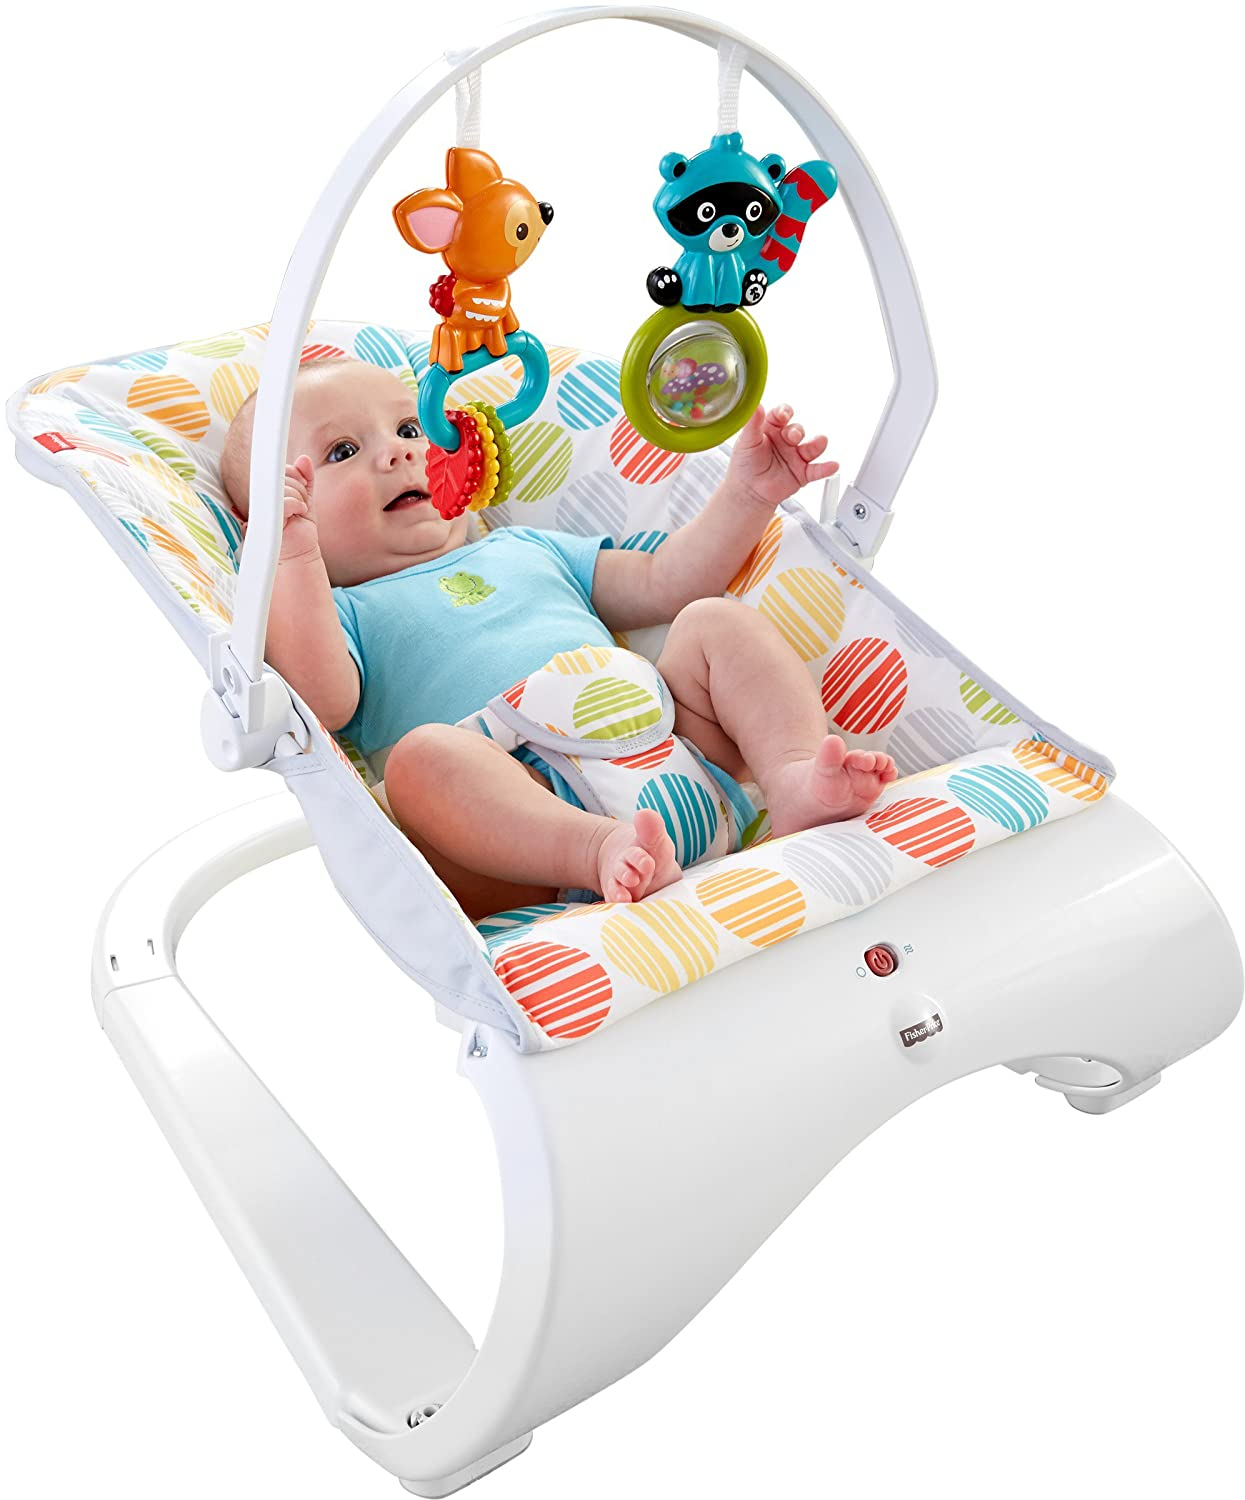 Fisher-Price Comfort Curve Bouncer Multi color  sc 1 st  Jaxslist & Baby Bouncers - Jaxslist